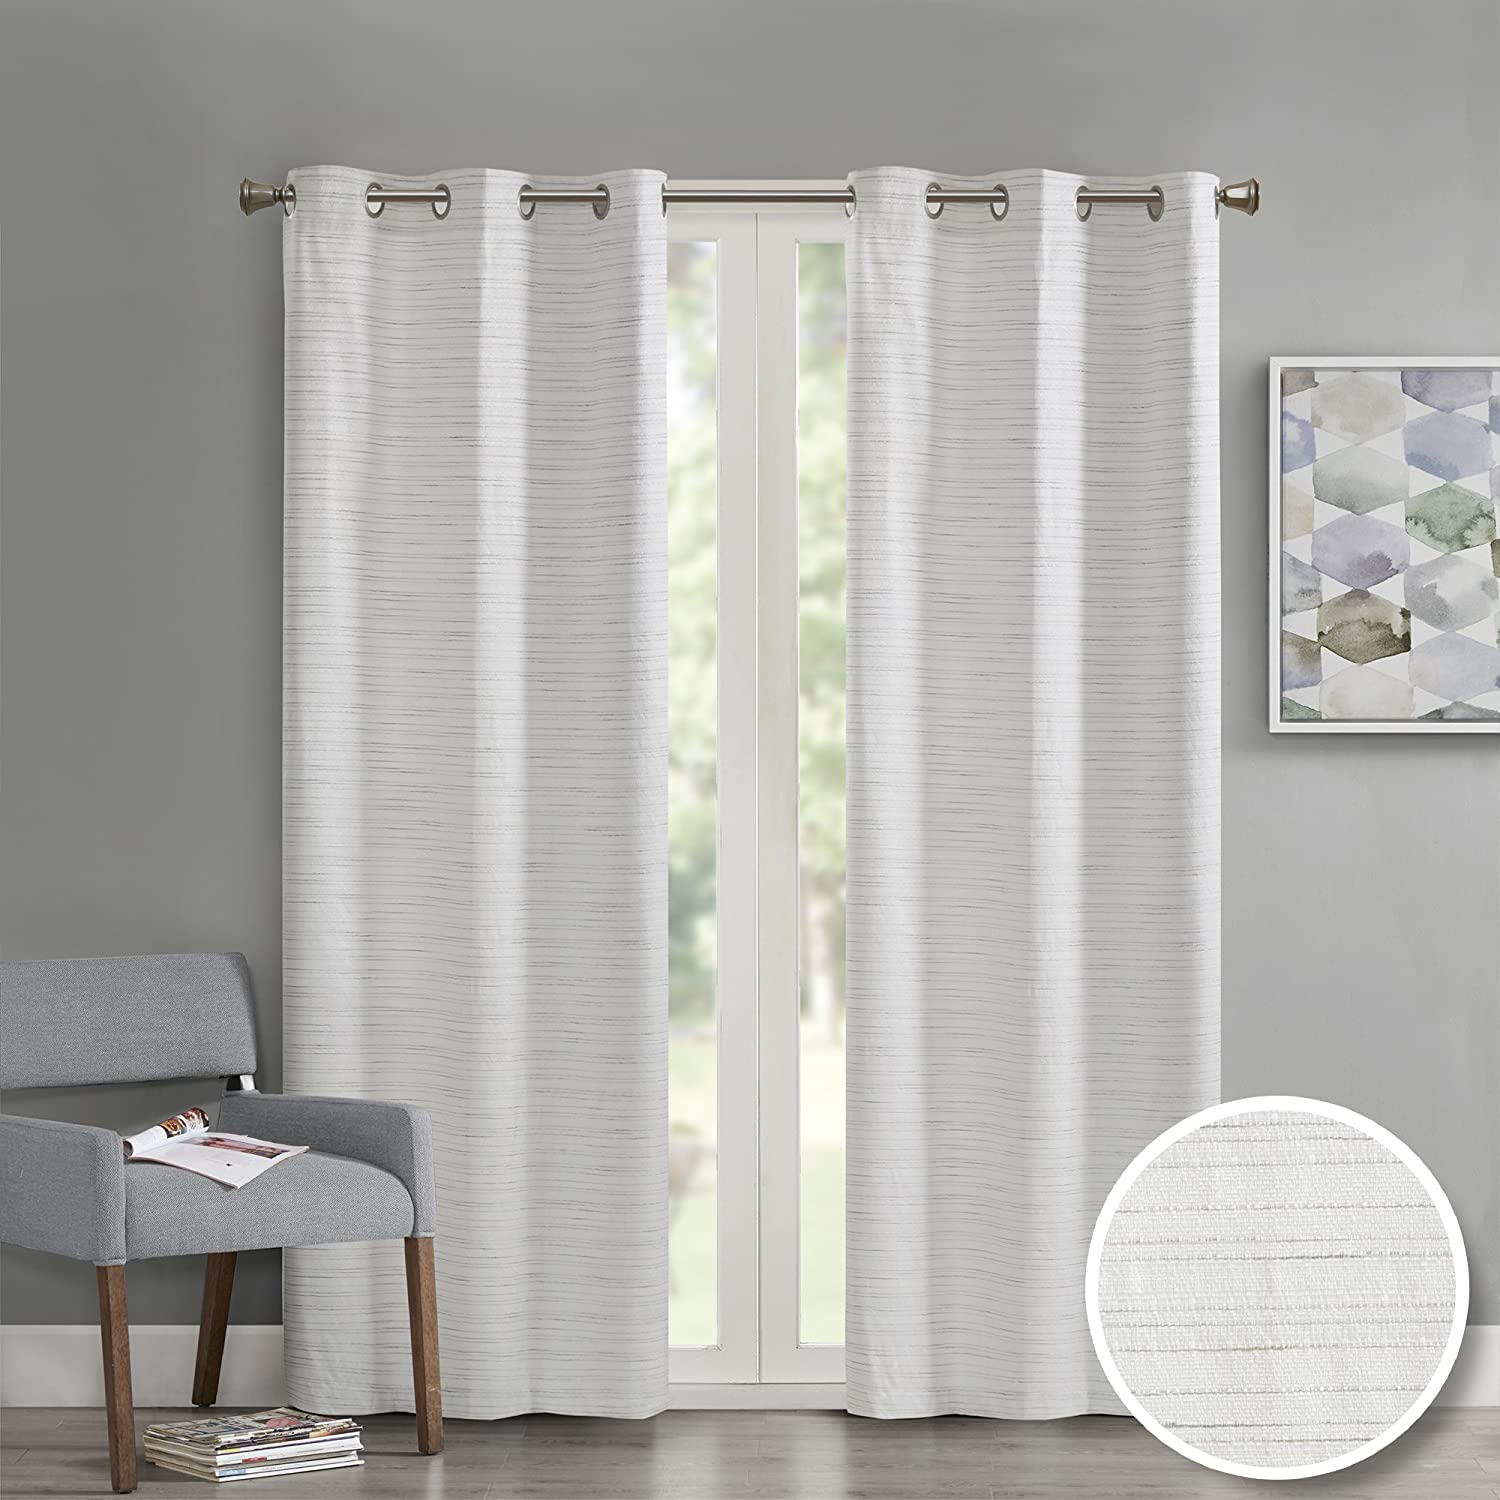 Comfort Spaces - Grasscloth Window Curtain Pair/Set of 2 Panels - Gray - 40x63 inch Panel - Foamback - Energy Efficient Saving- Grommet Top - 2 Pieces